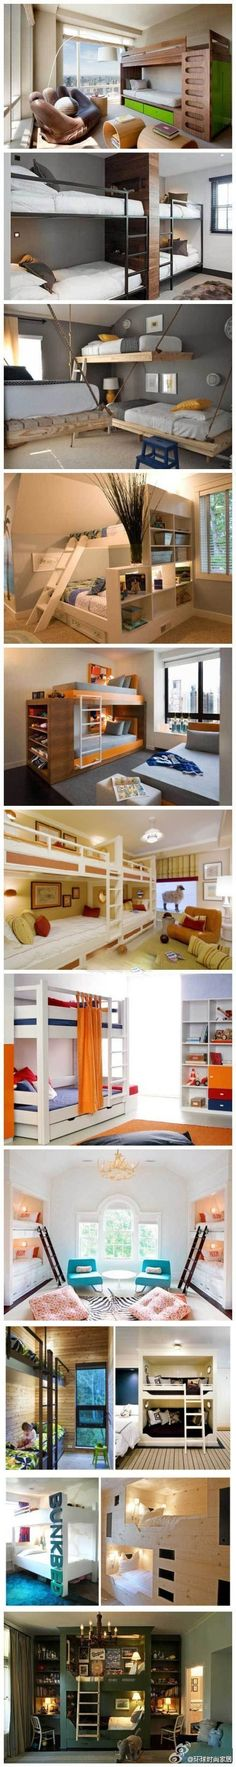 Ideas for double beds (or more) in one room. Casa Kids, Bunk Bed Designs, Double Beds, Double Deck Bed, Cool Diy Projects, Bunk Beds, Bunk Rooms, Bedrooms, Loft Beds